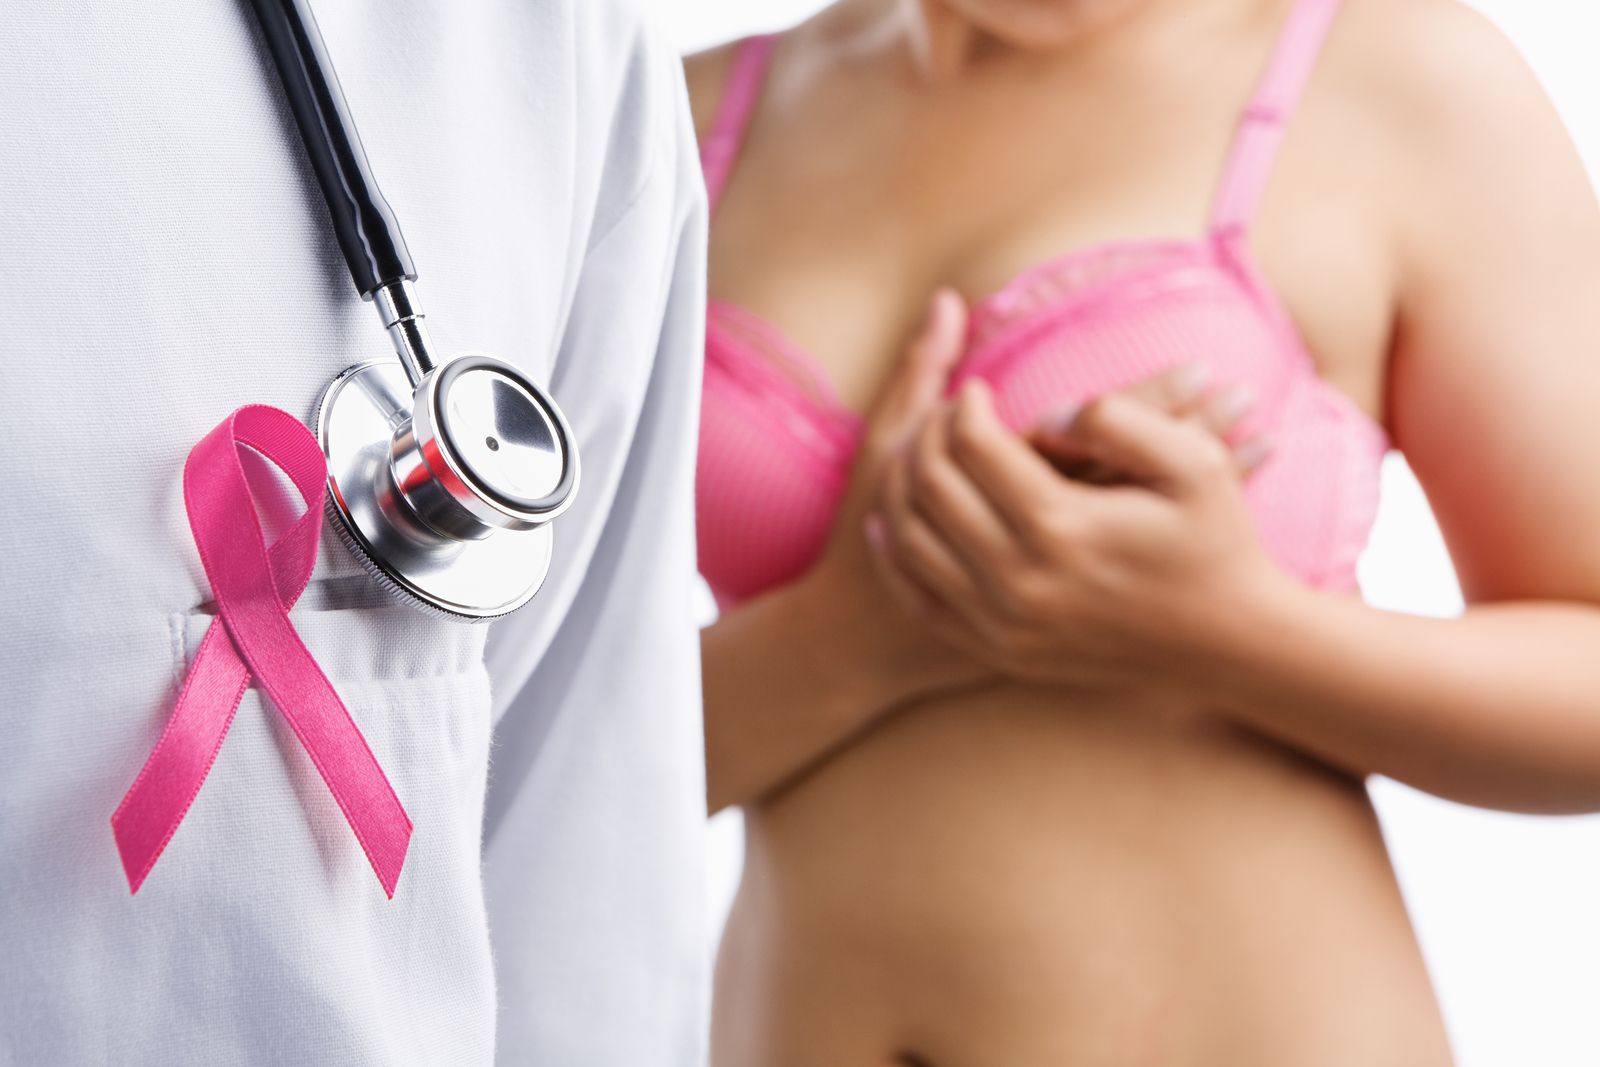 Everyone knows the recommendation to check your breasts each month for lumps or abnormalities. Here's how.